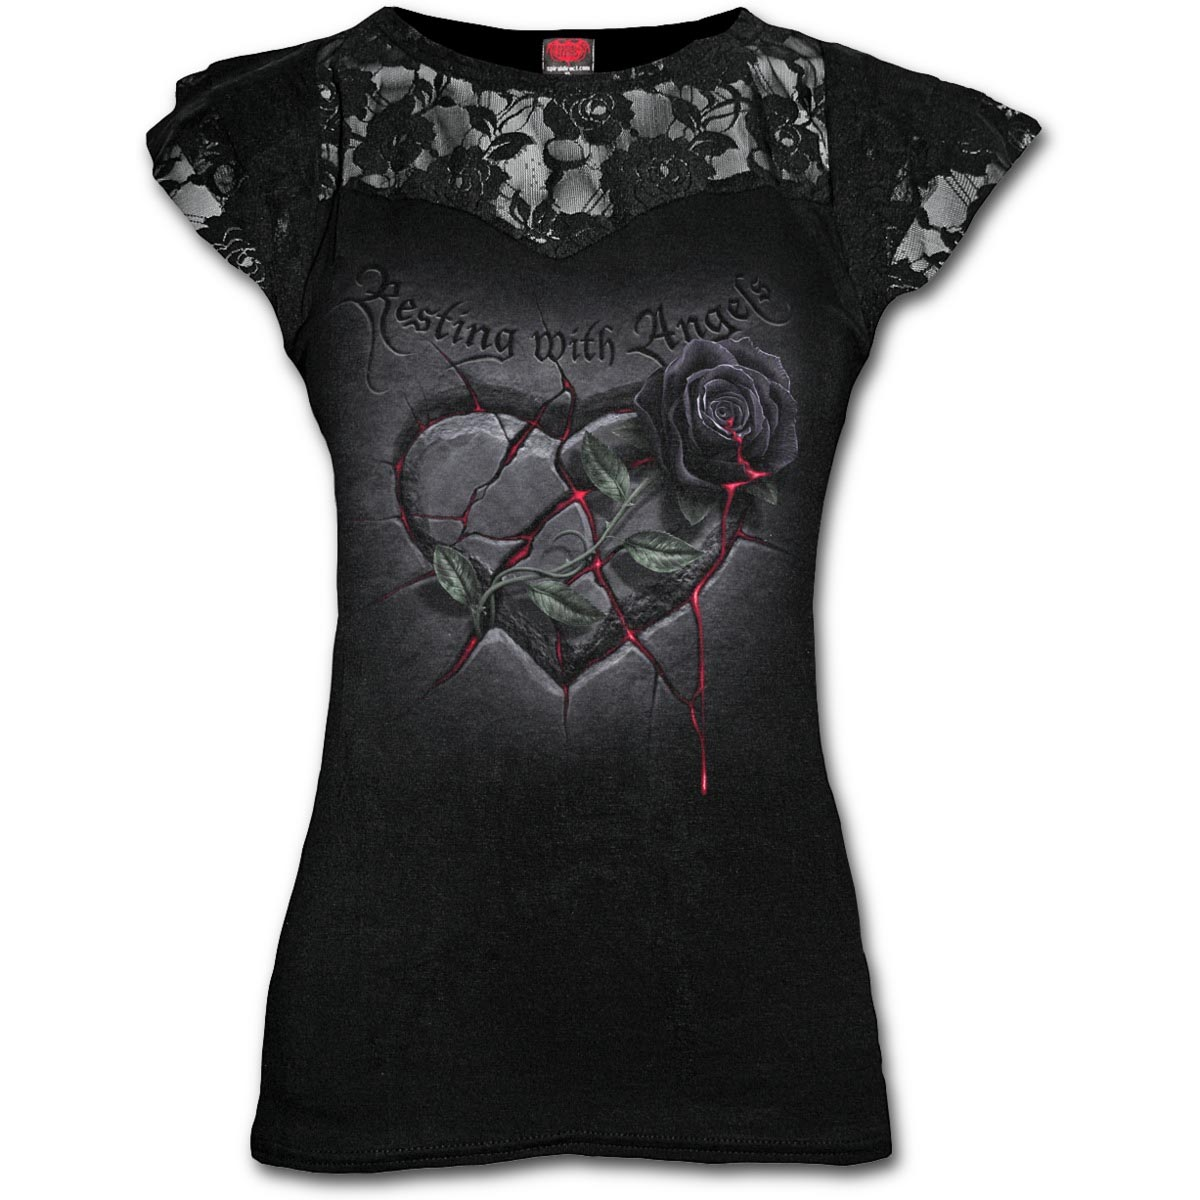 Spiral-Direct-Ladies-Black-Goth-RESTING-With-Angels-Top-Lace-Rose-All-Sizes thumbnail 3